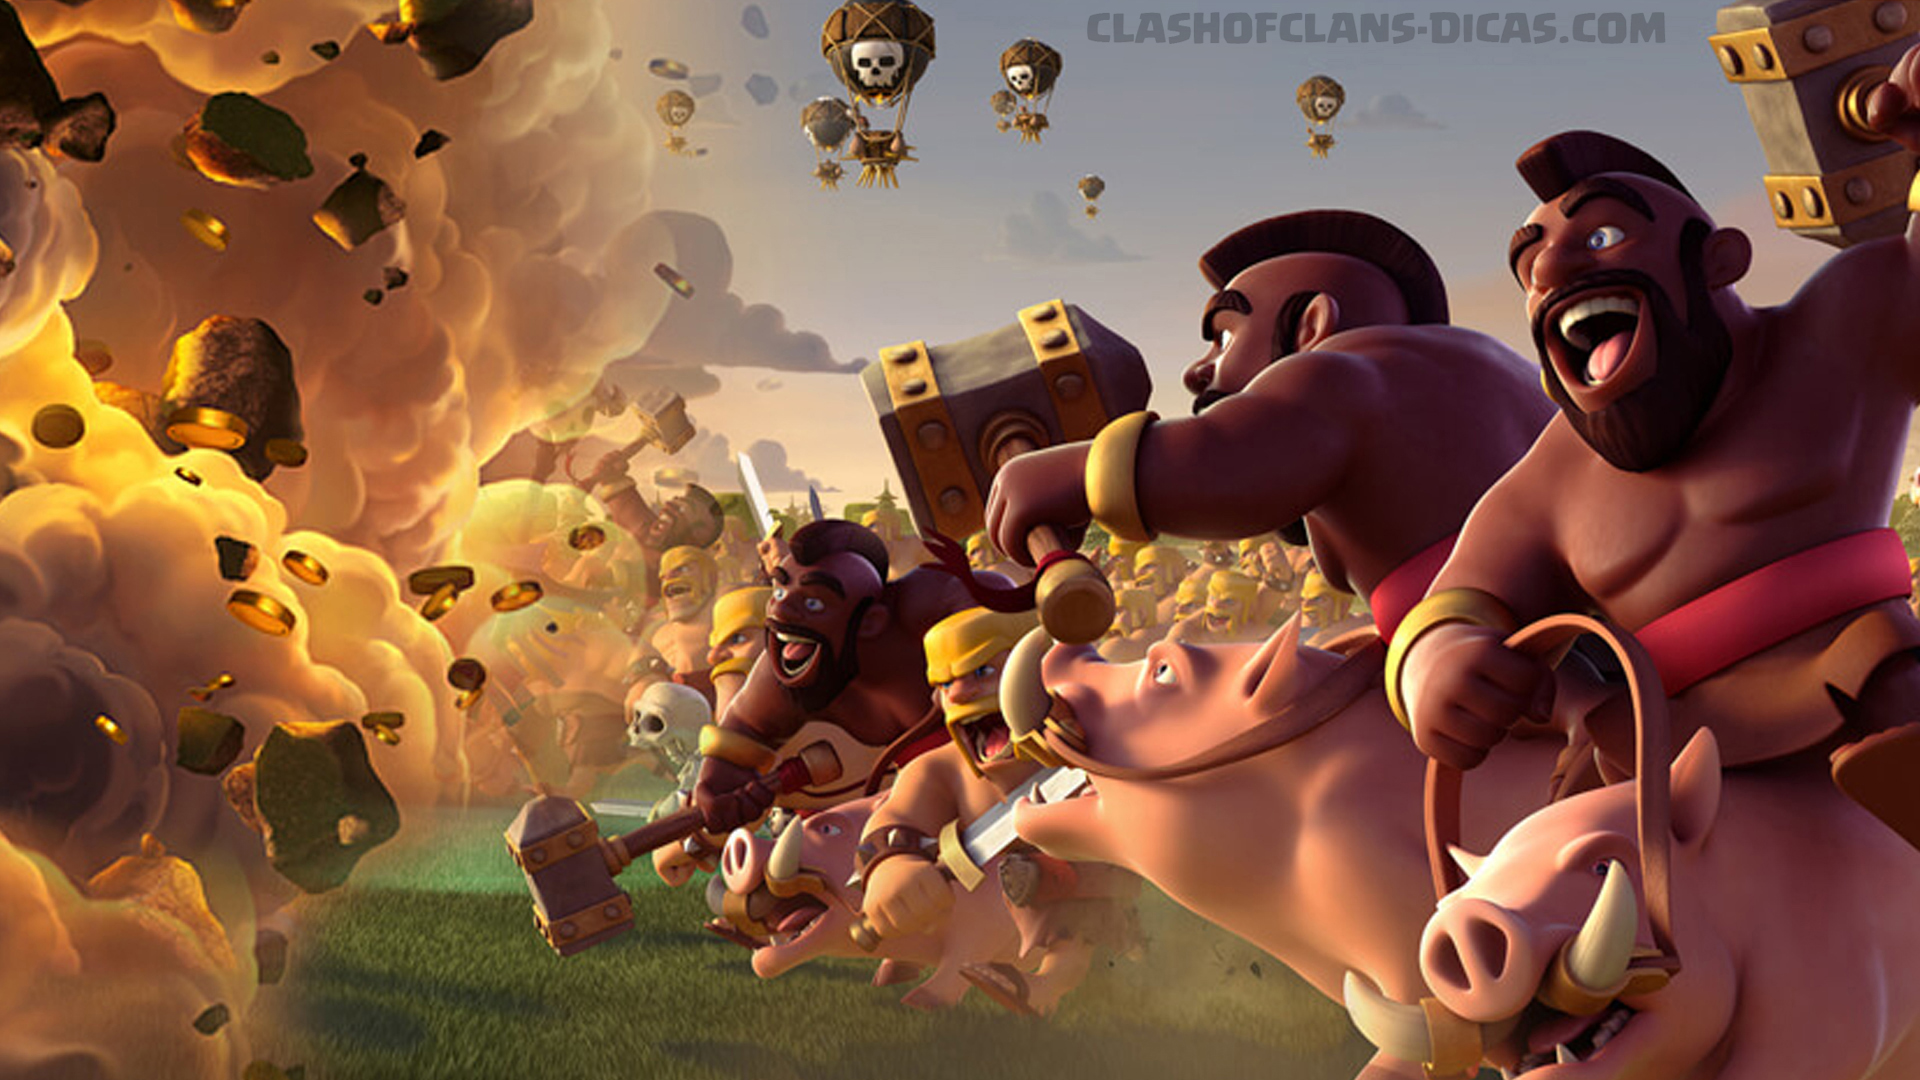 Download Clash Of Clans Wallpaper For Pc Hd